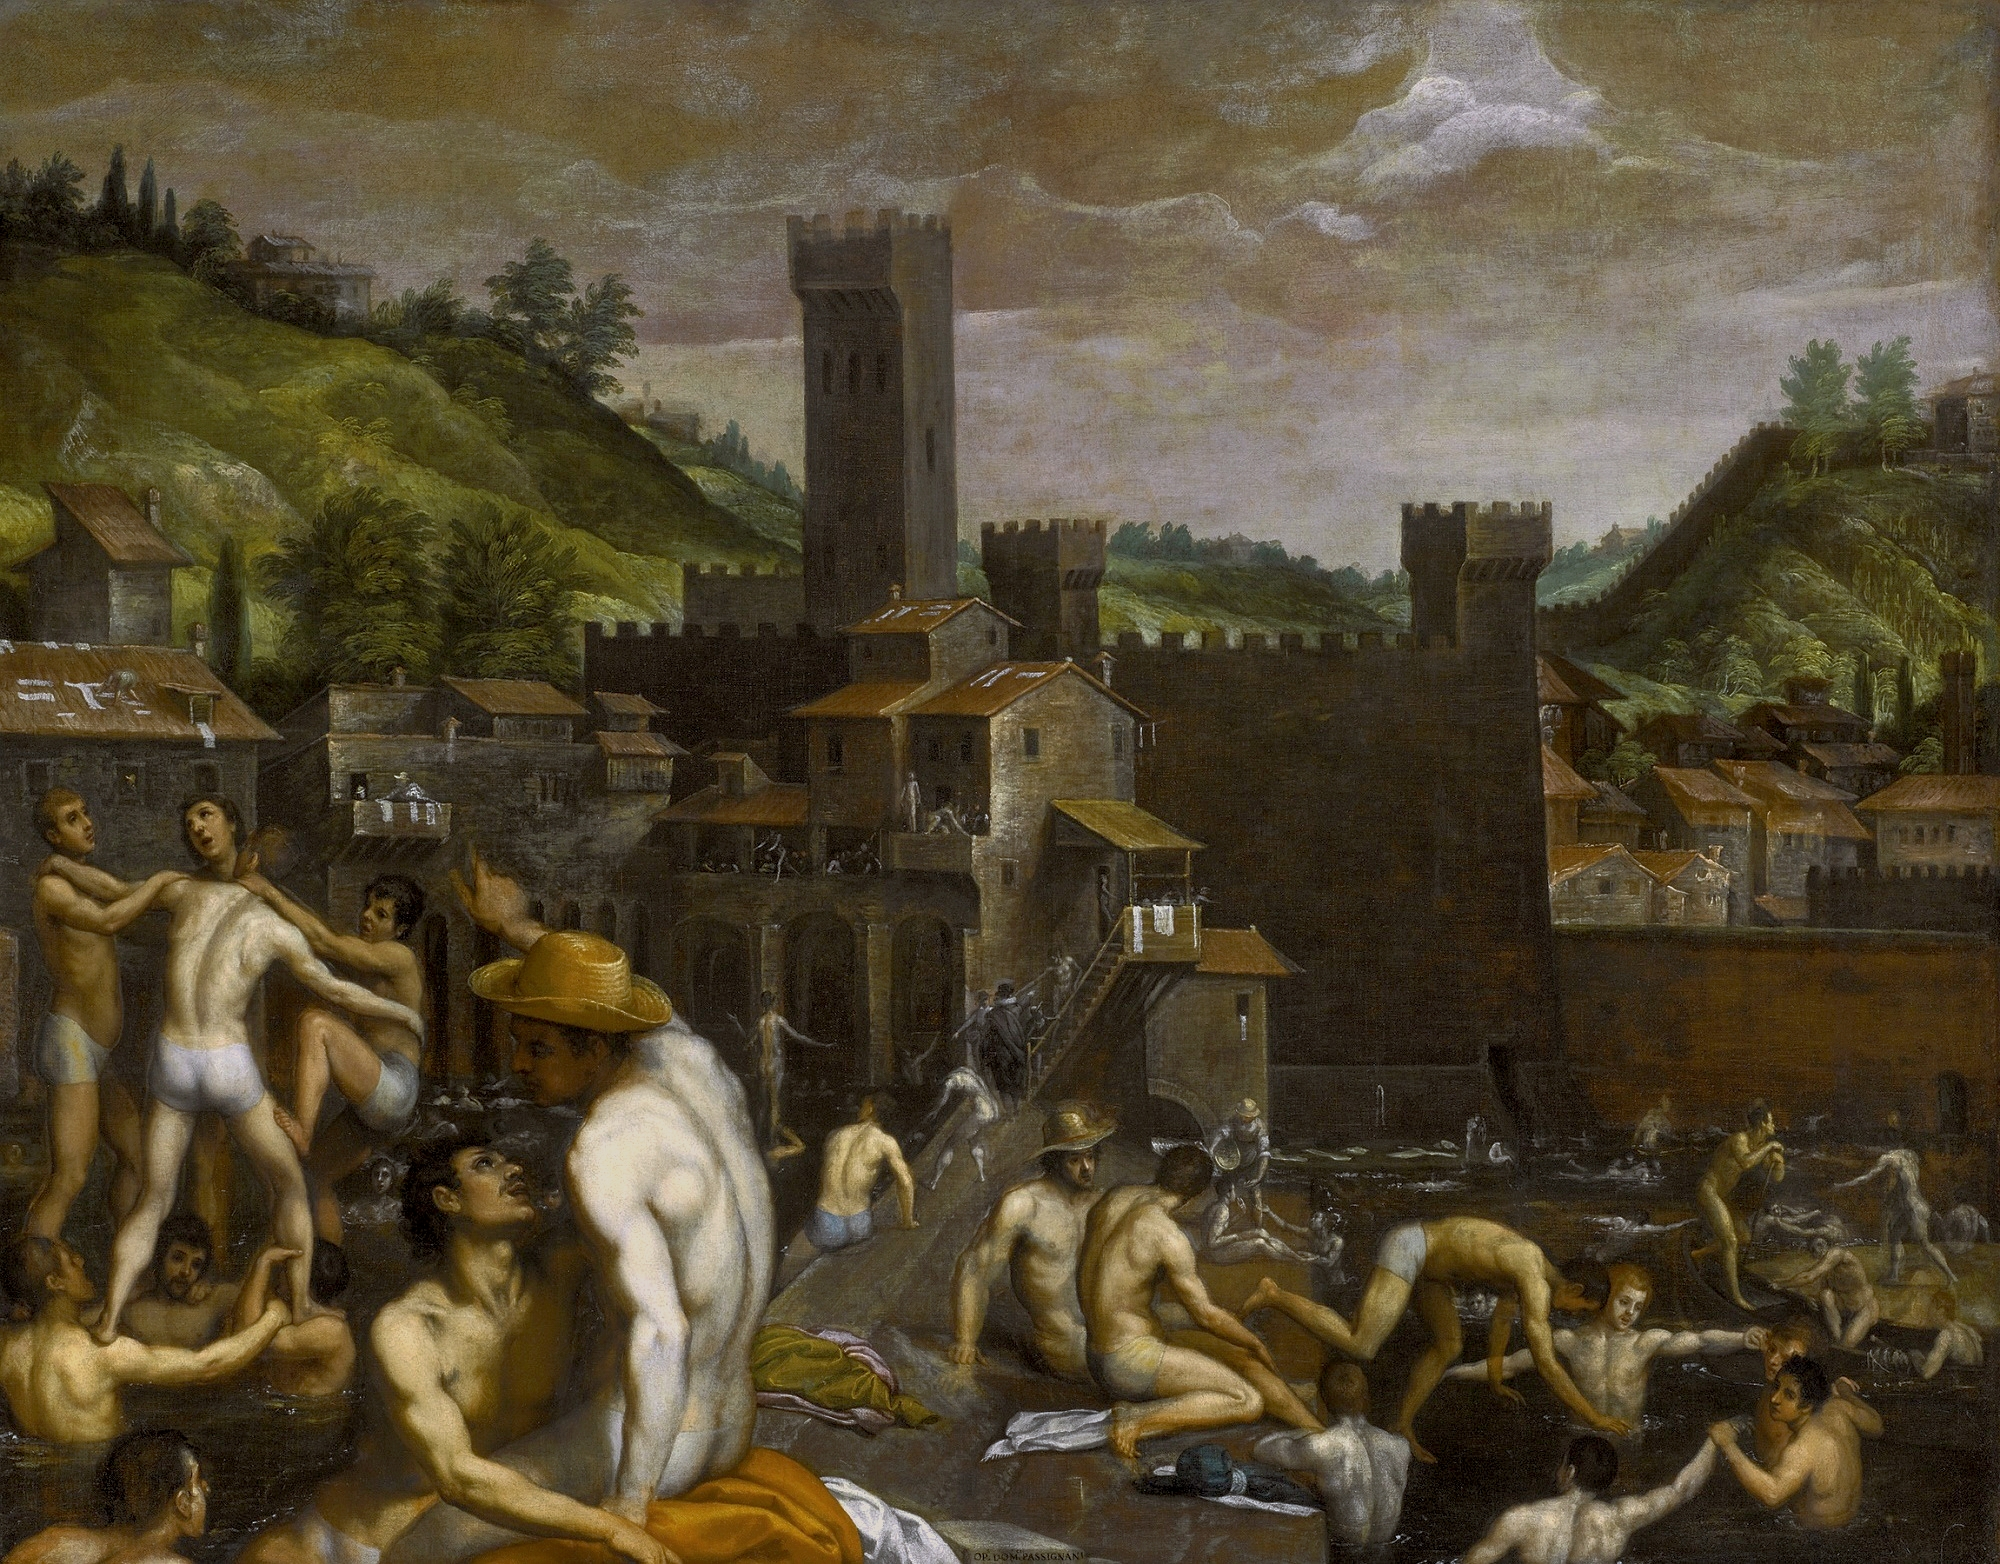 Domenico Cresti: Bathers at San Niccolo